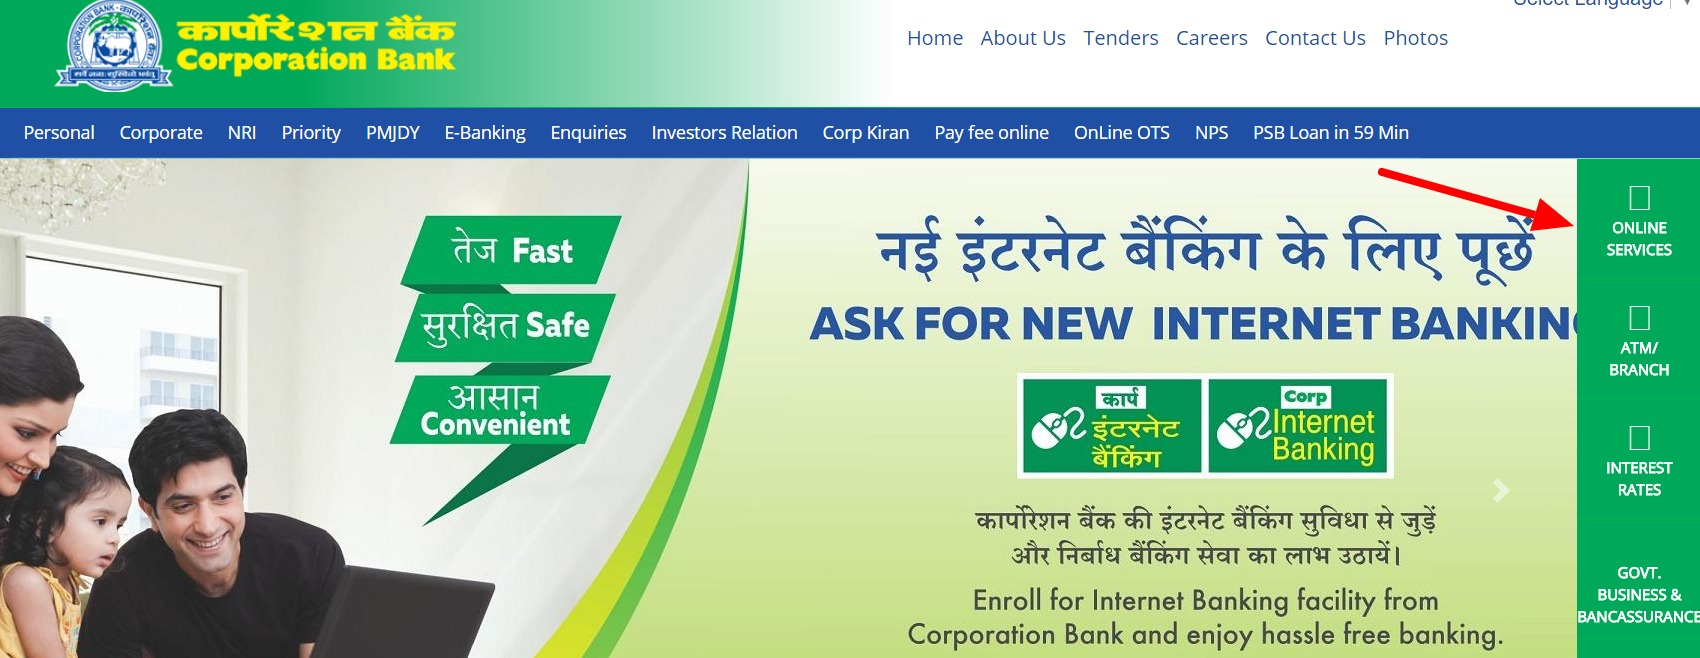 Corporation Bank Net Banking Online – How To Register & Activate Account? – Corporation Bank 2